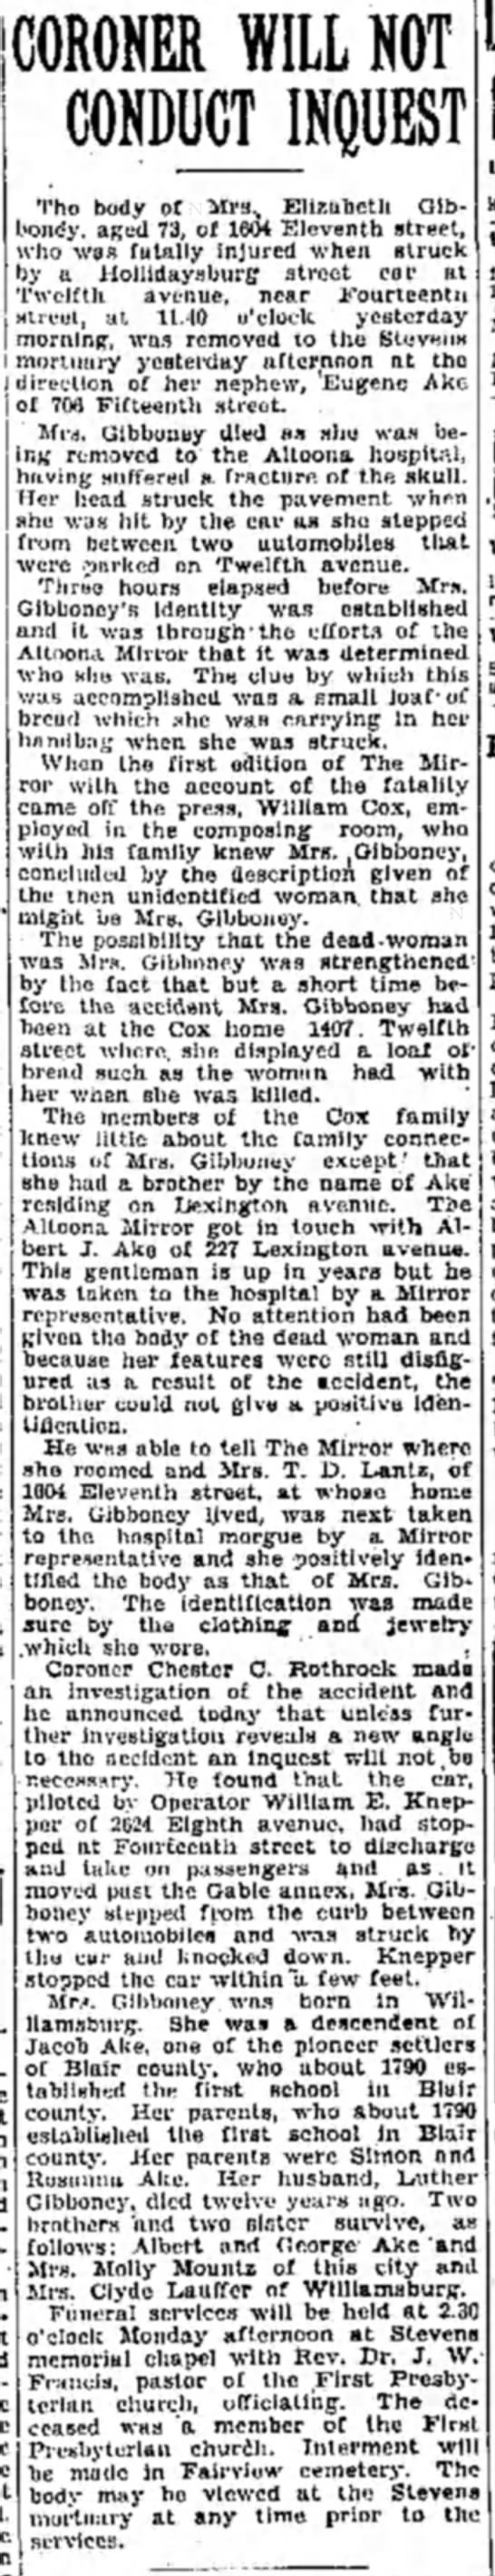 Obituarly for Elizabeth Ake Gibboney, sister of great grandfather, Albert - CORONER WILL NOT CONDUCT INQUEST The body of...